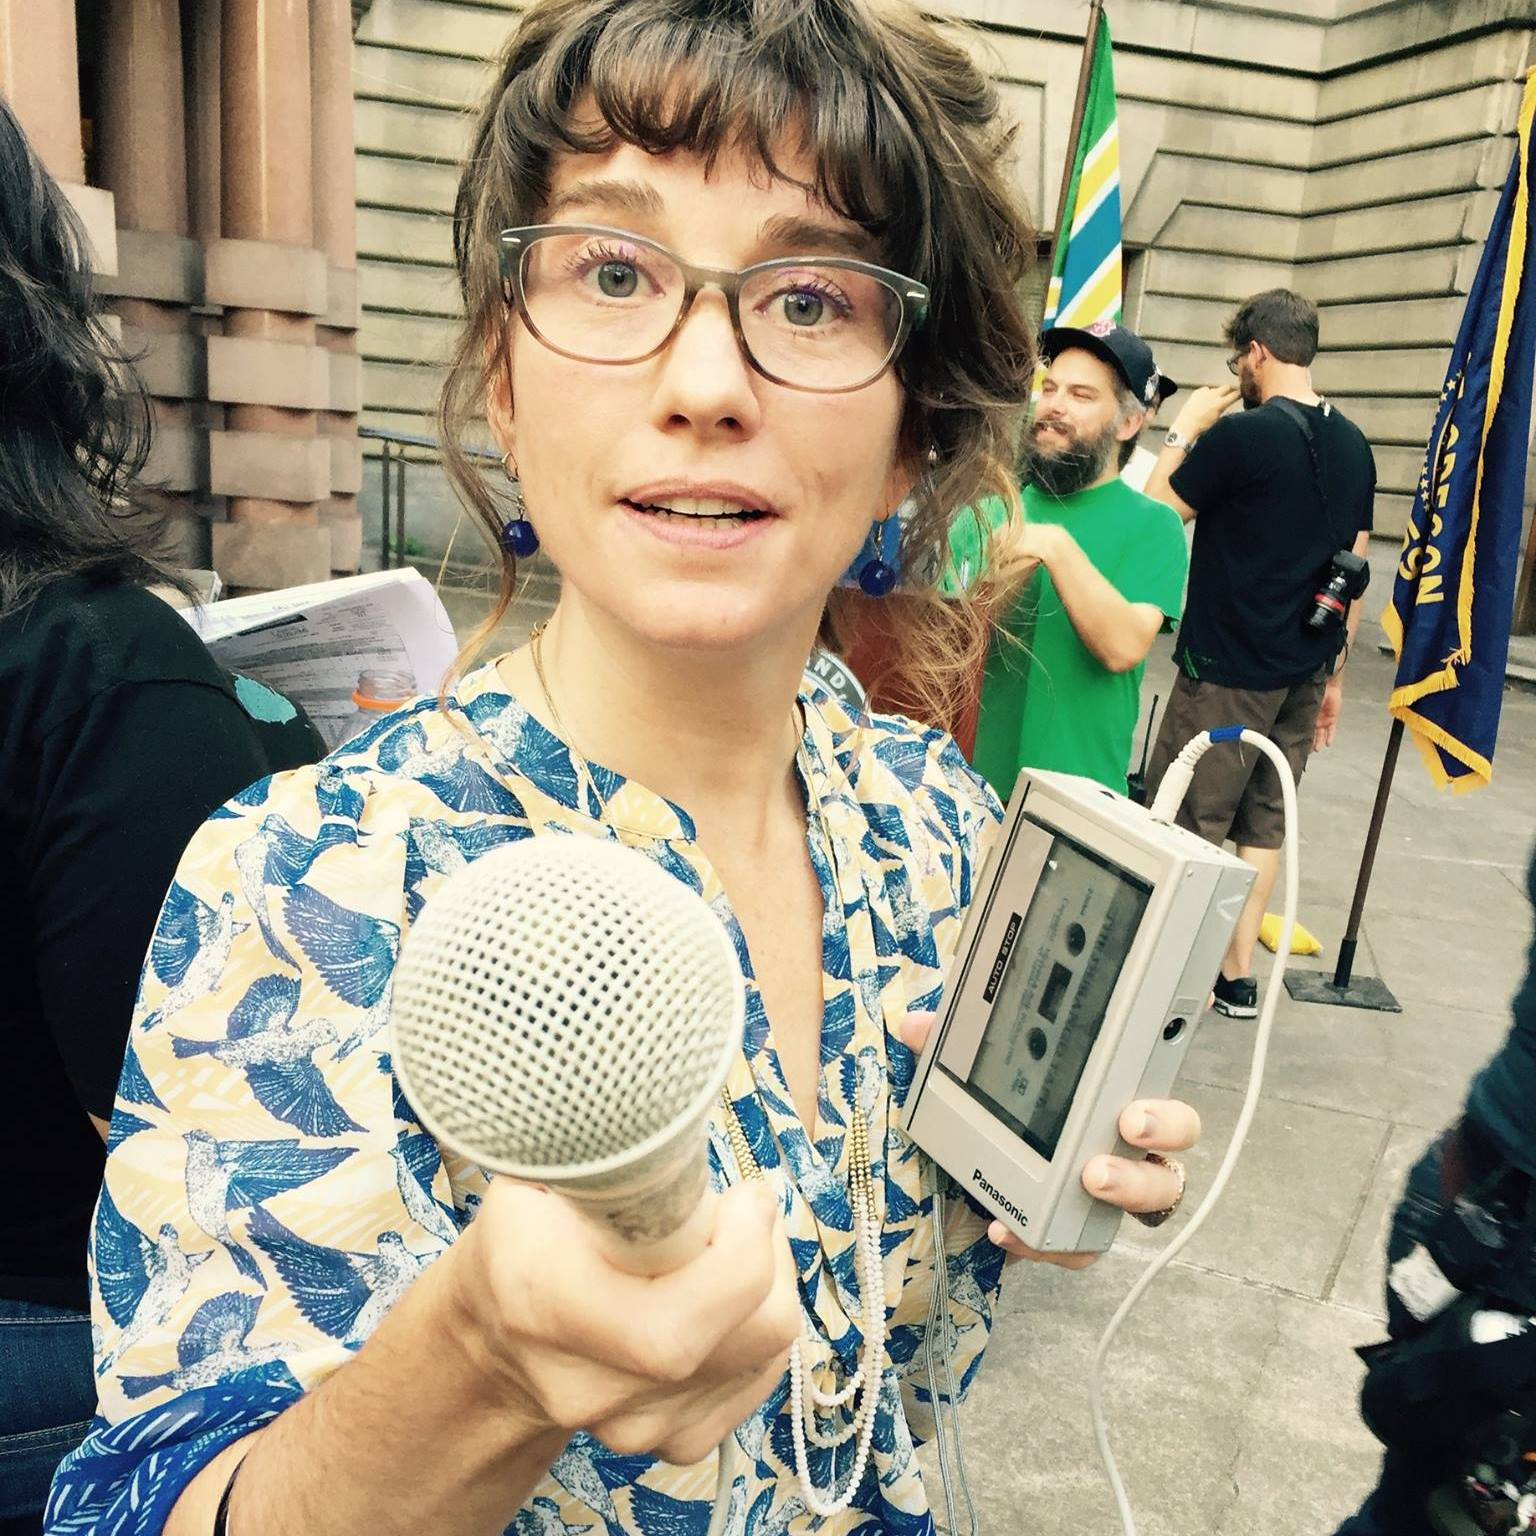 Photo from being an reporter as an Extra on set of the TV comedy PORTLANDIA on IFC, Season 6, August 2015